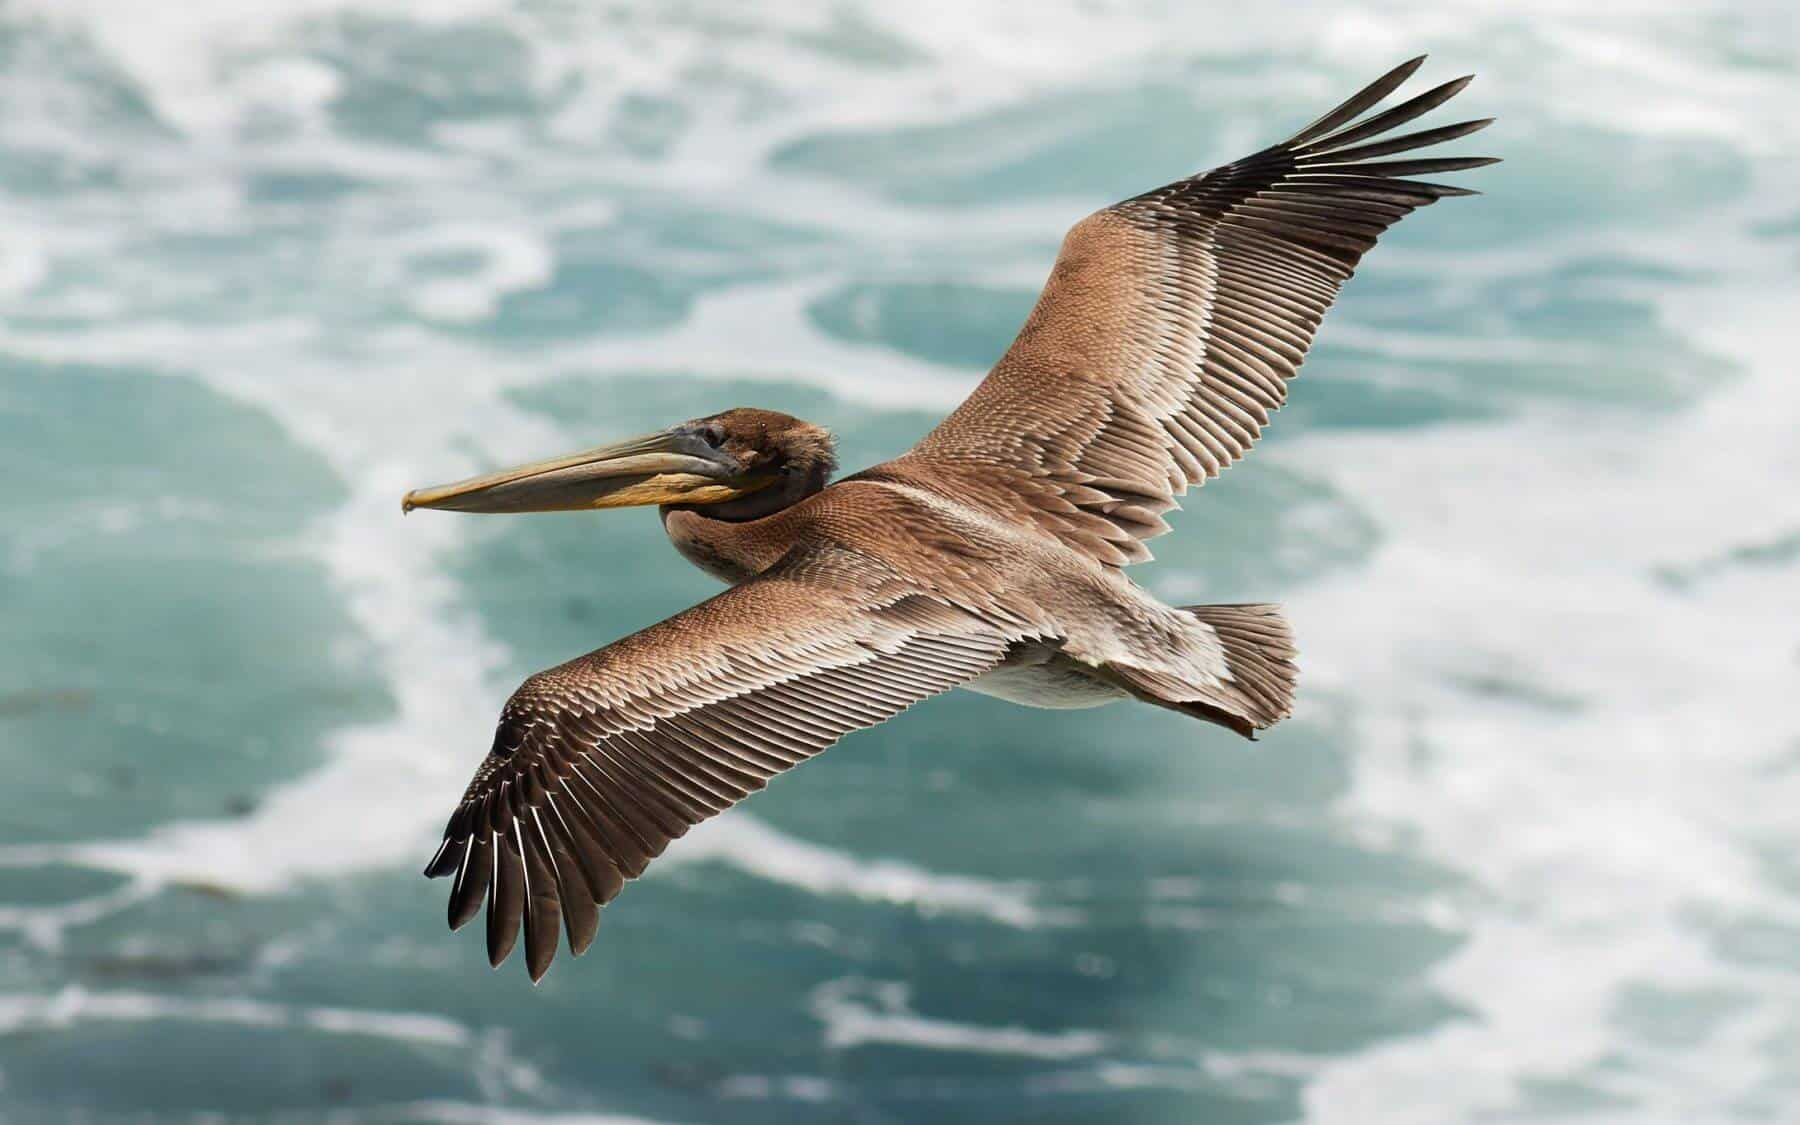 Brown Pelican, © Frank Schulenburg